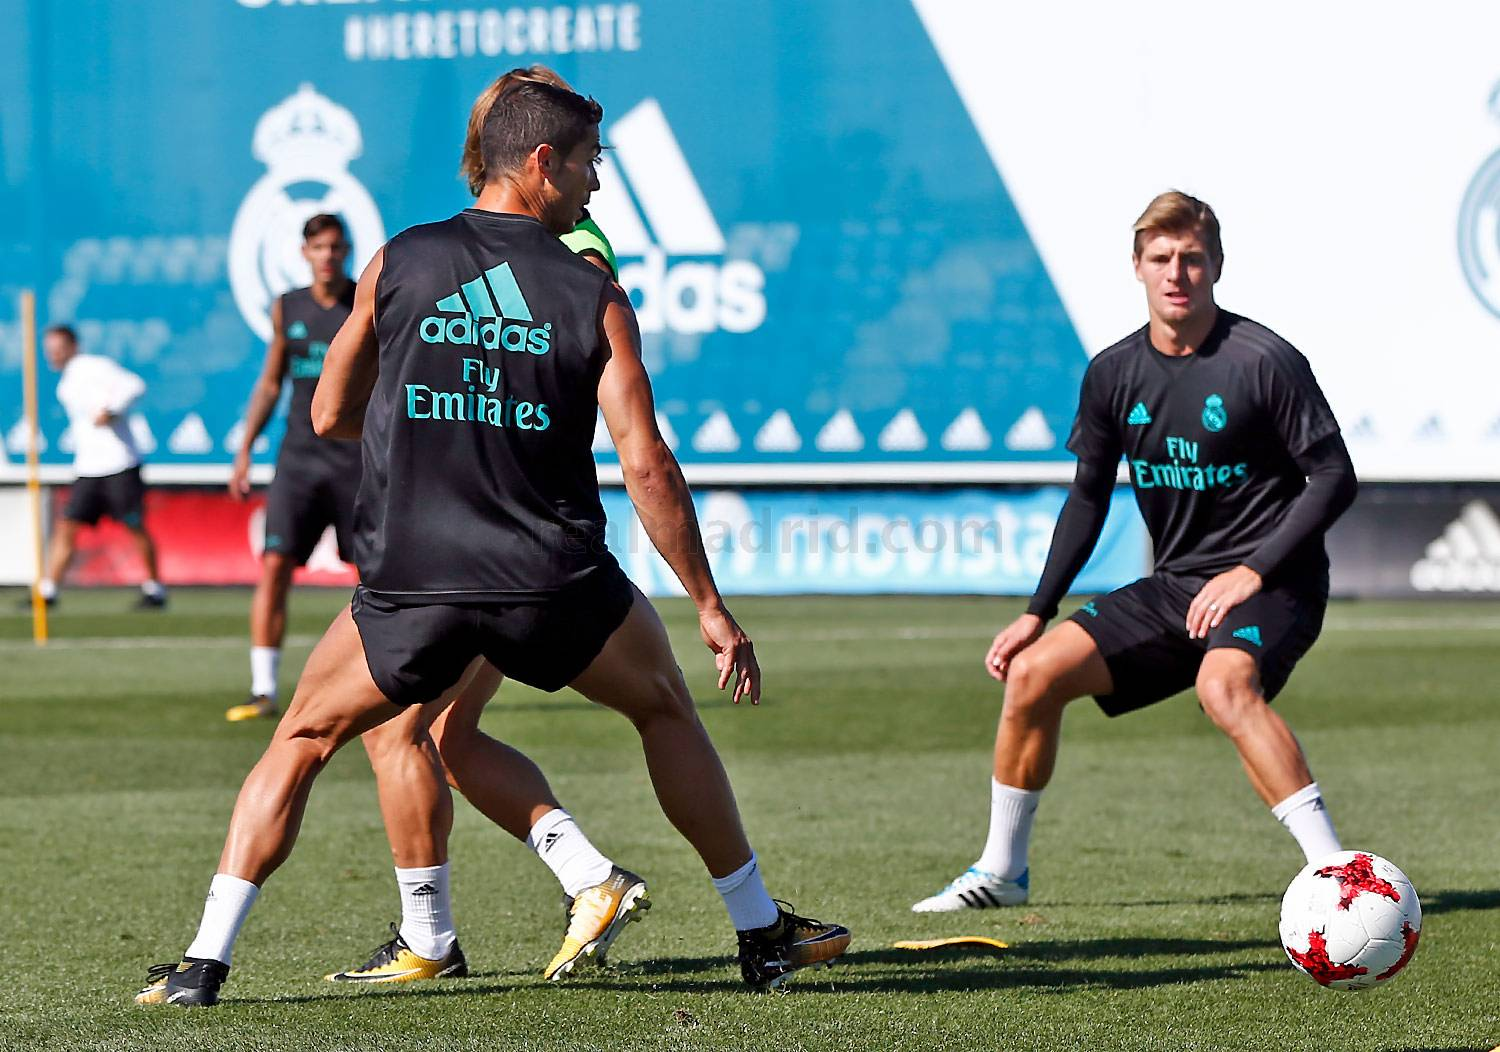 Real Madrid - Entrenamiento del Real Madrid - 10-08-2017